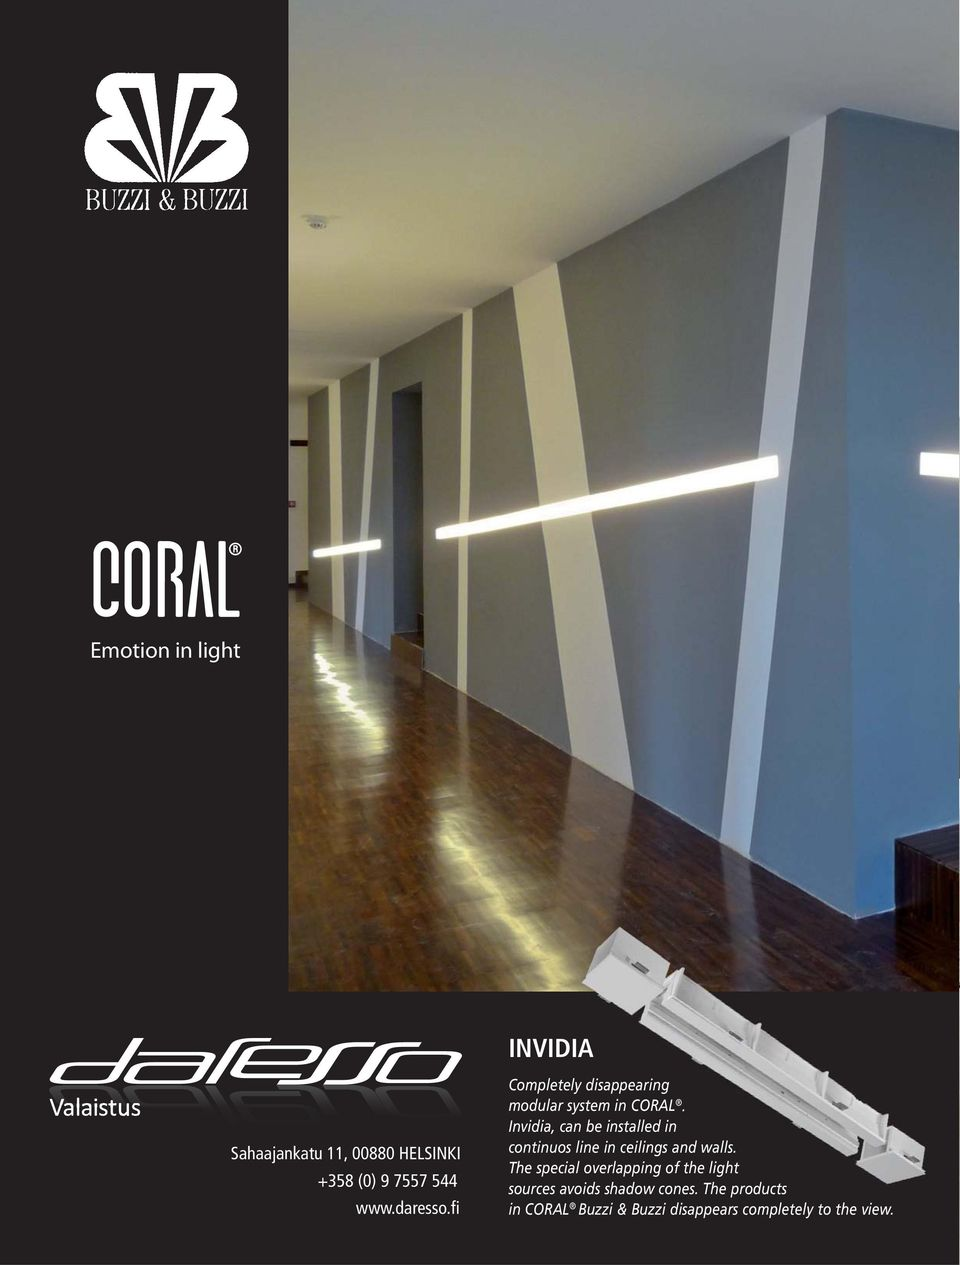 Invidia, can be installed in continuos line in ceilings and walls.